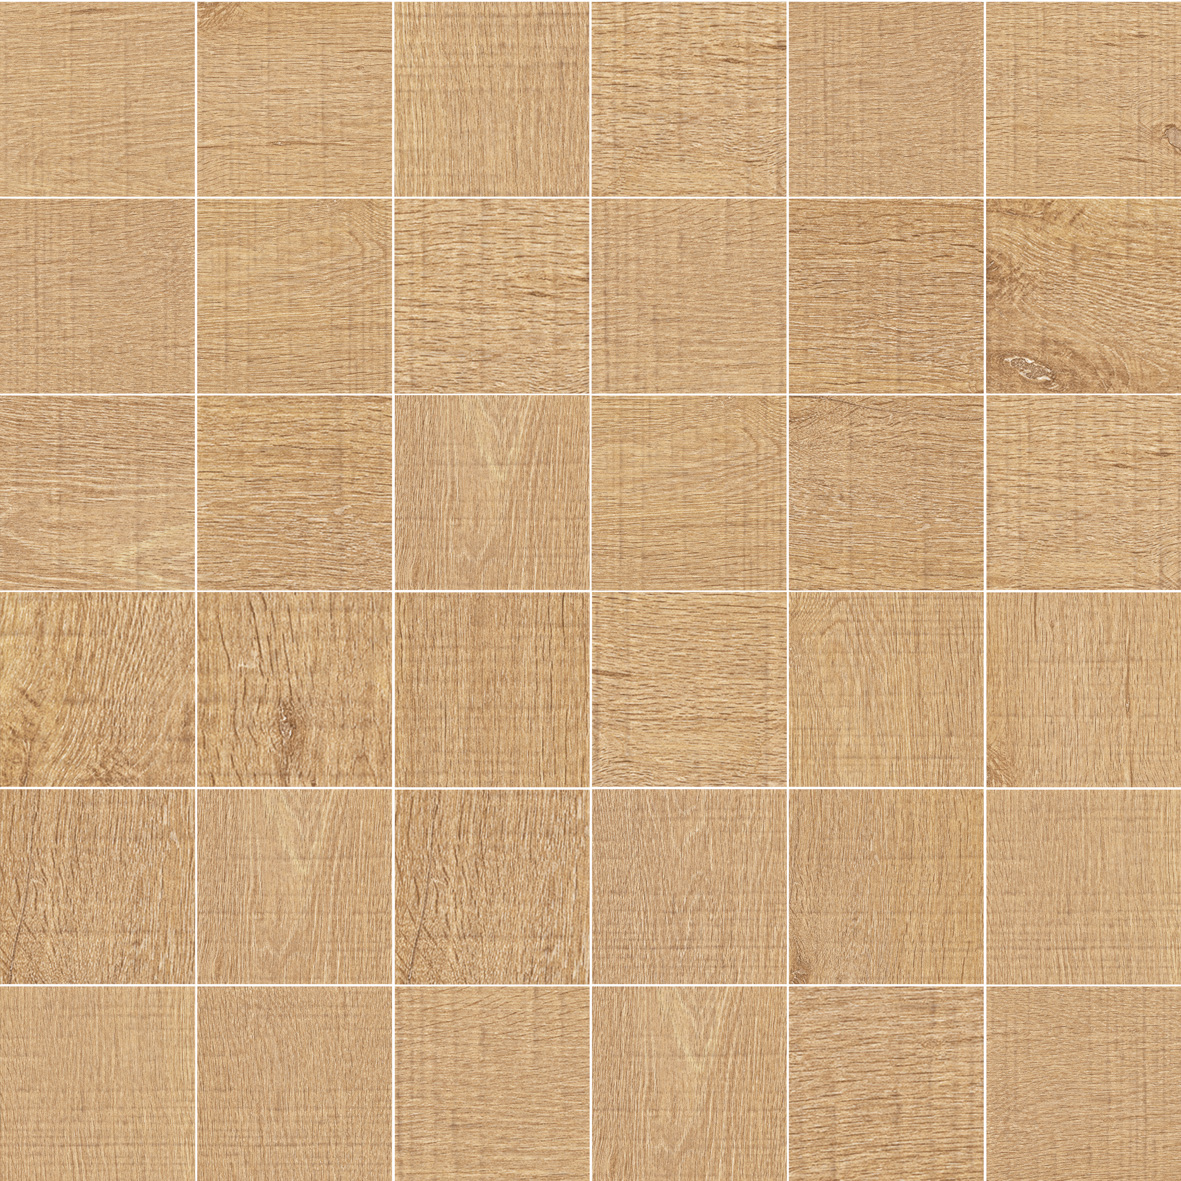 NORWAY OAK NATURAL MOSAICO 5X5